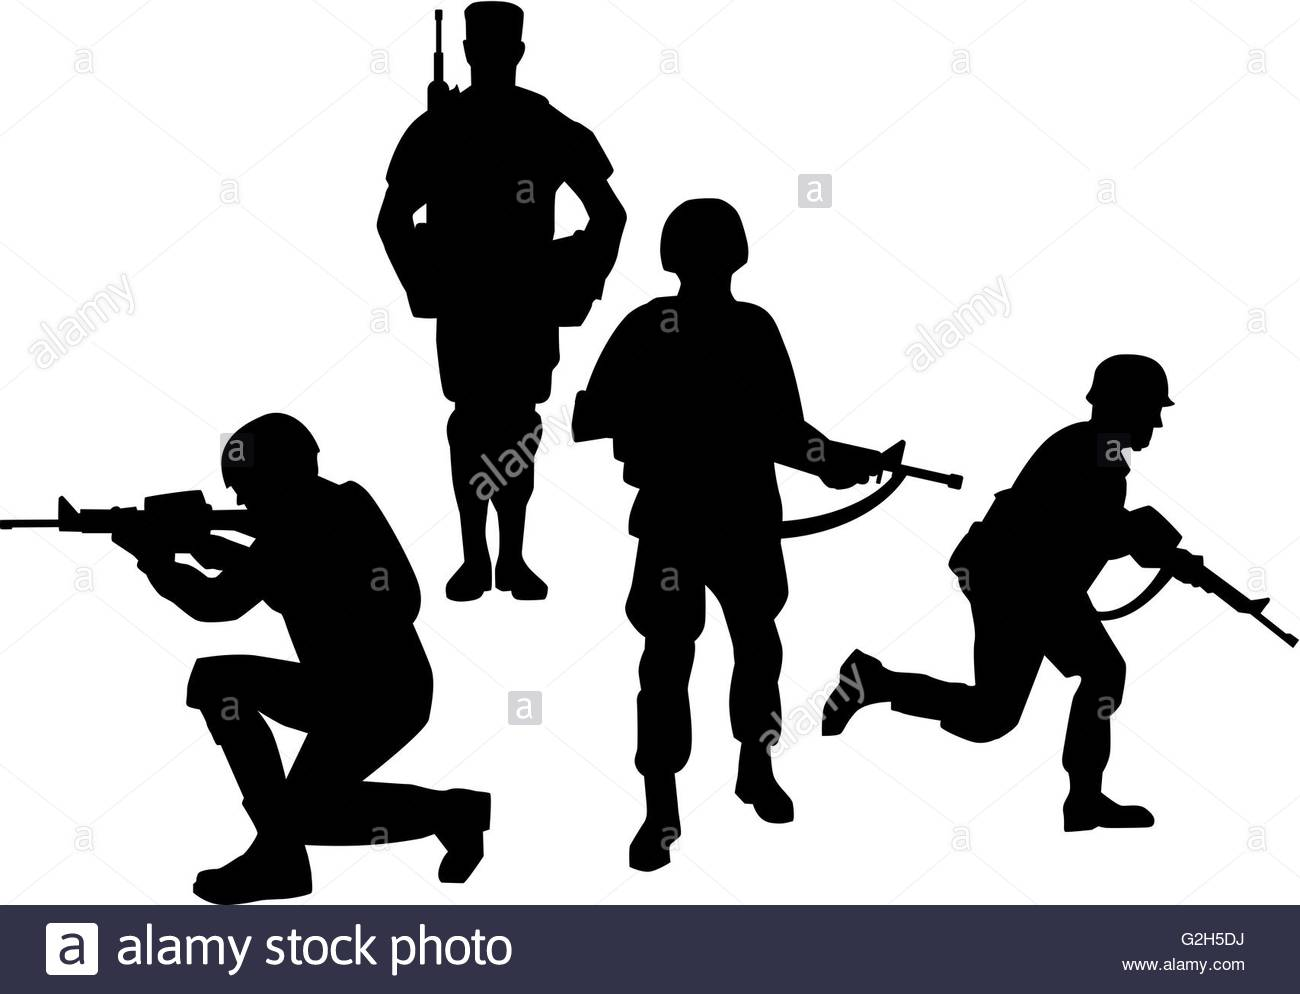 1300x994 Army Soldier Silhouette Black And White Stock Photos Amp Images